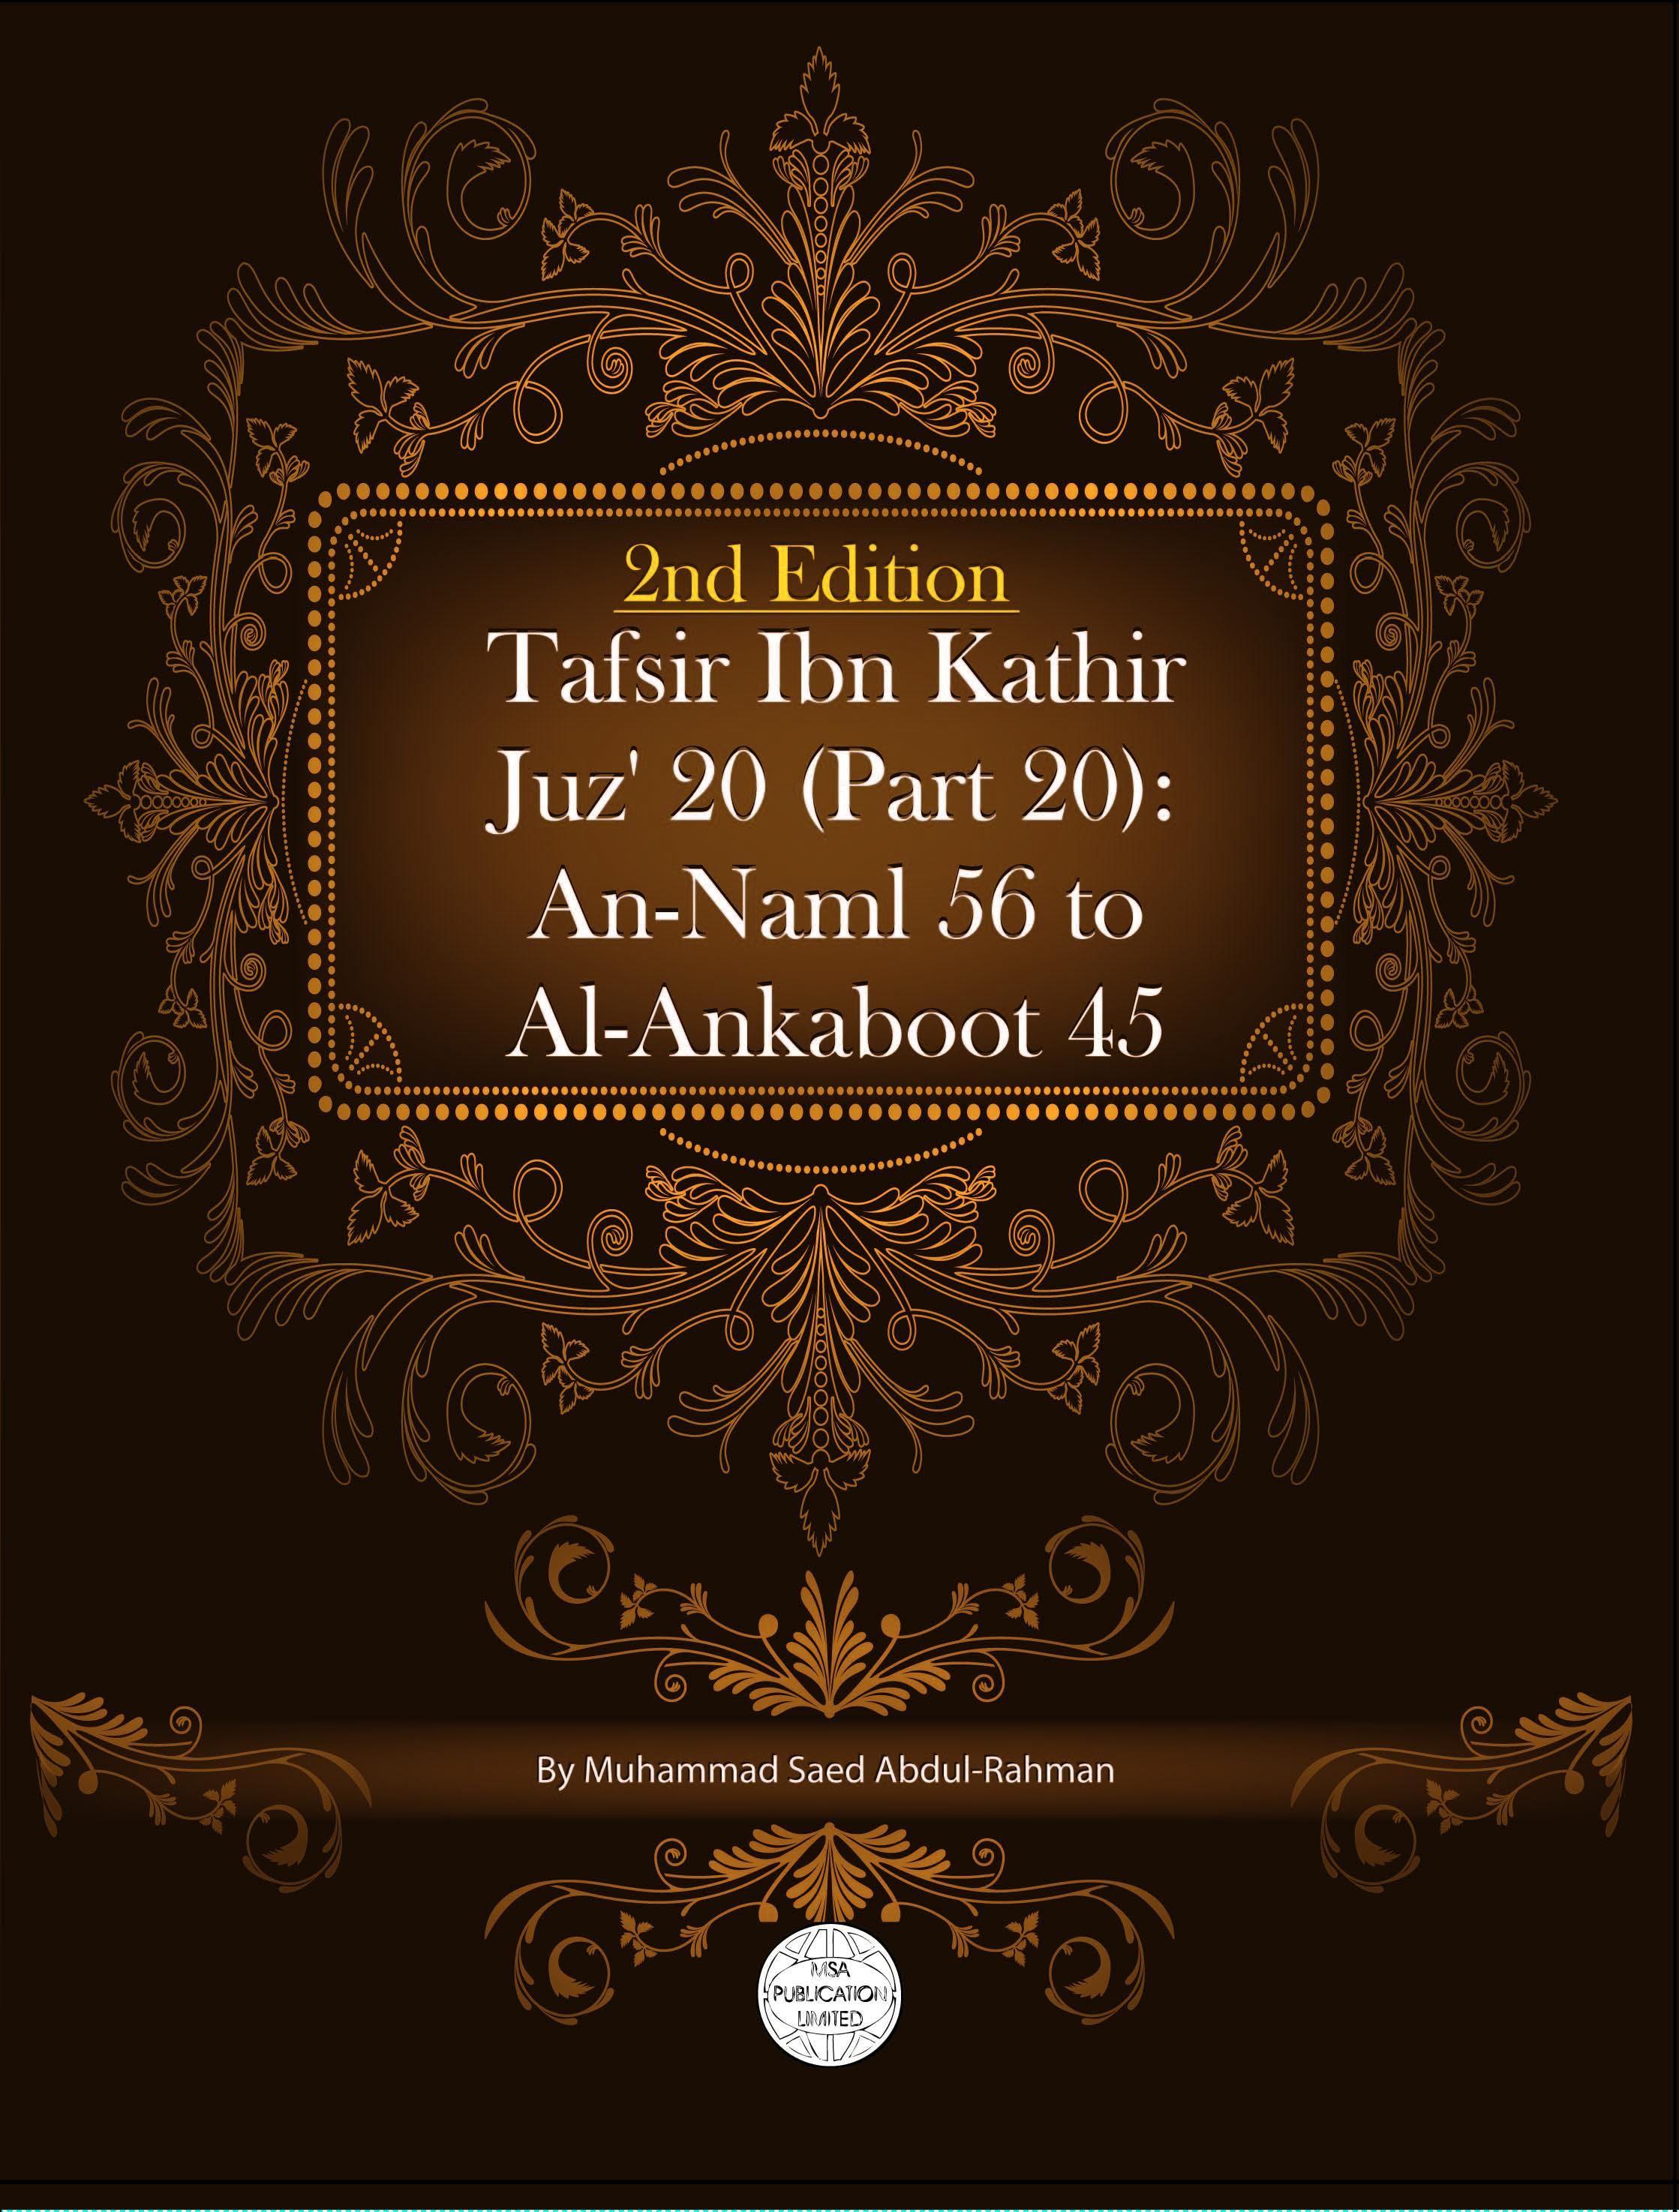 Tafsir Ibn Kathir Juz' 20 (Part 20): An-Naml 56 To Al-Ankaboot 45 2nd Edition